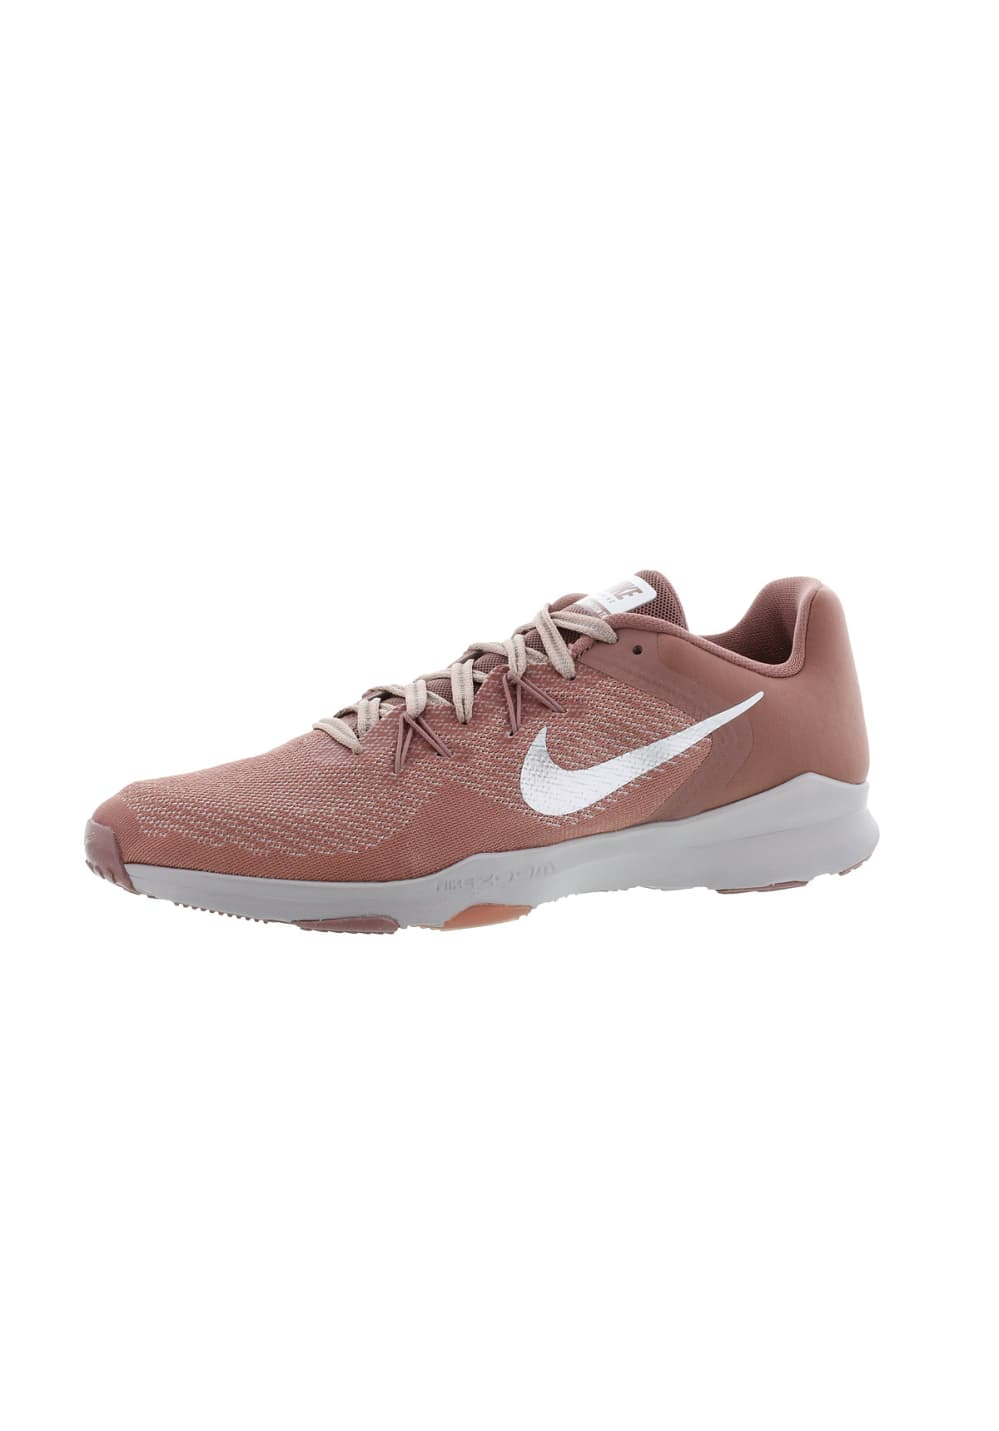 906d394b43b0 Next. -60%. Nike. Zoom Condition Tr 2 Premium - Fitness shoes for Women